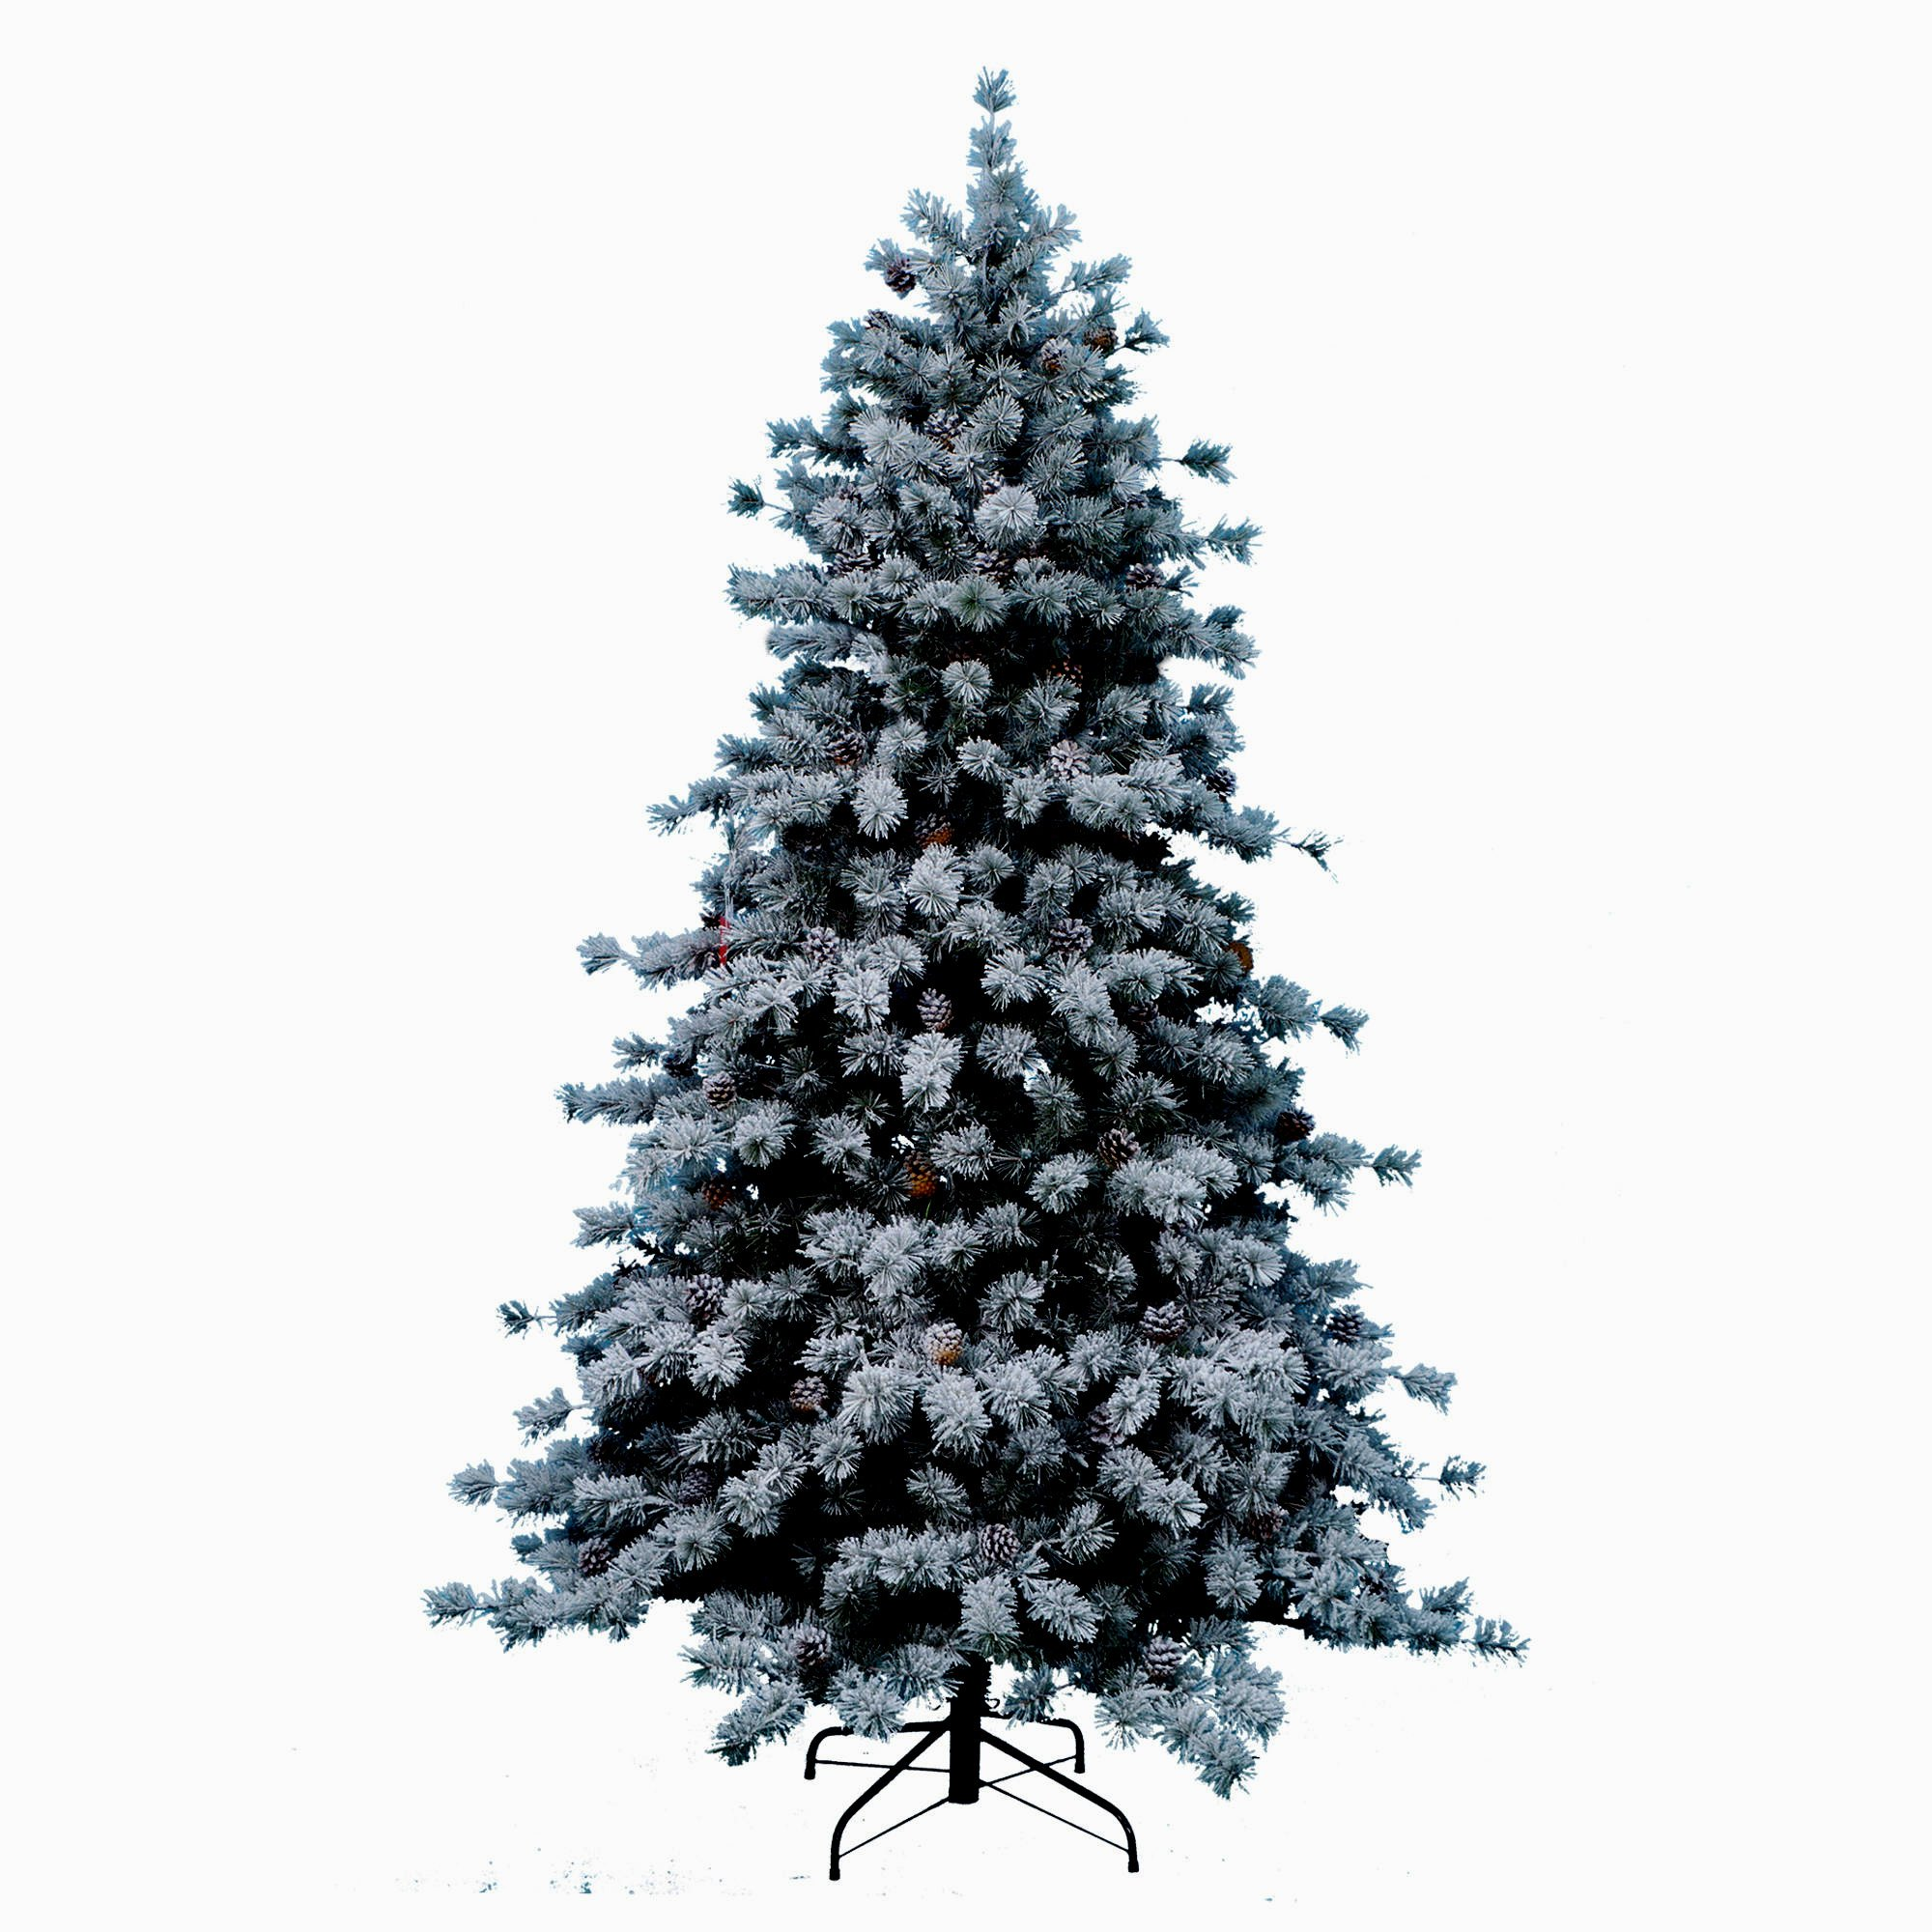 Artificial Christmas Tree. Fake 7.5 Foot Xmas Arctic Snow Pine. It's Classic Fir Shape Looks Neat & Natural, Dense, Lush Foliage & Multicolor. Snow-flocked Branches. Holiday Season Party Decor.